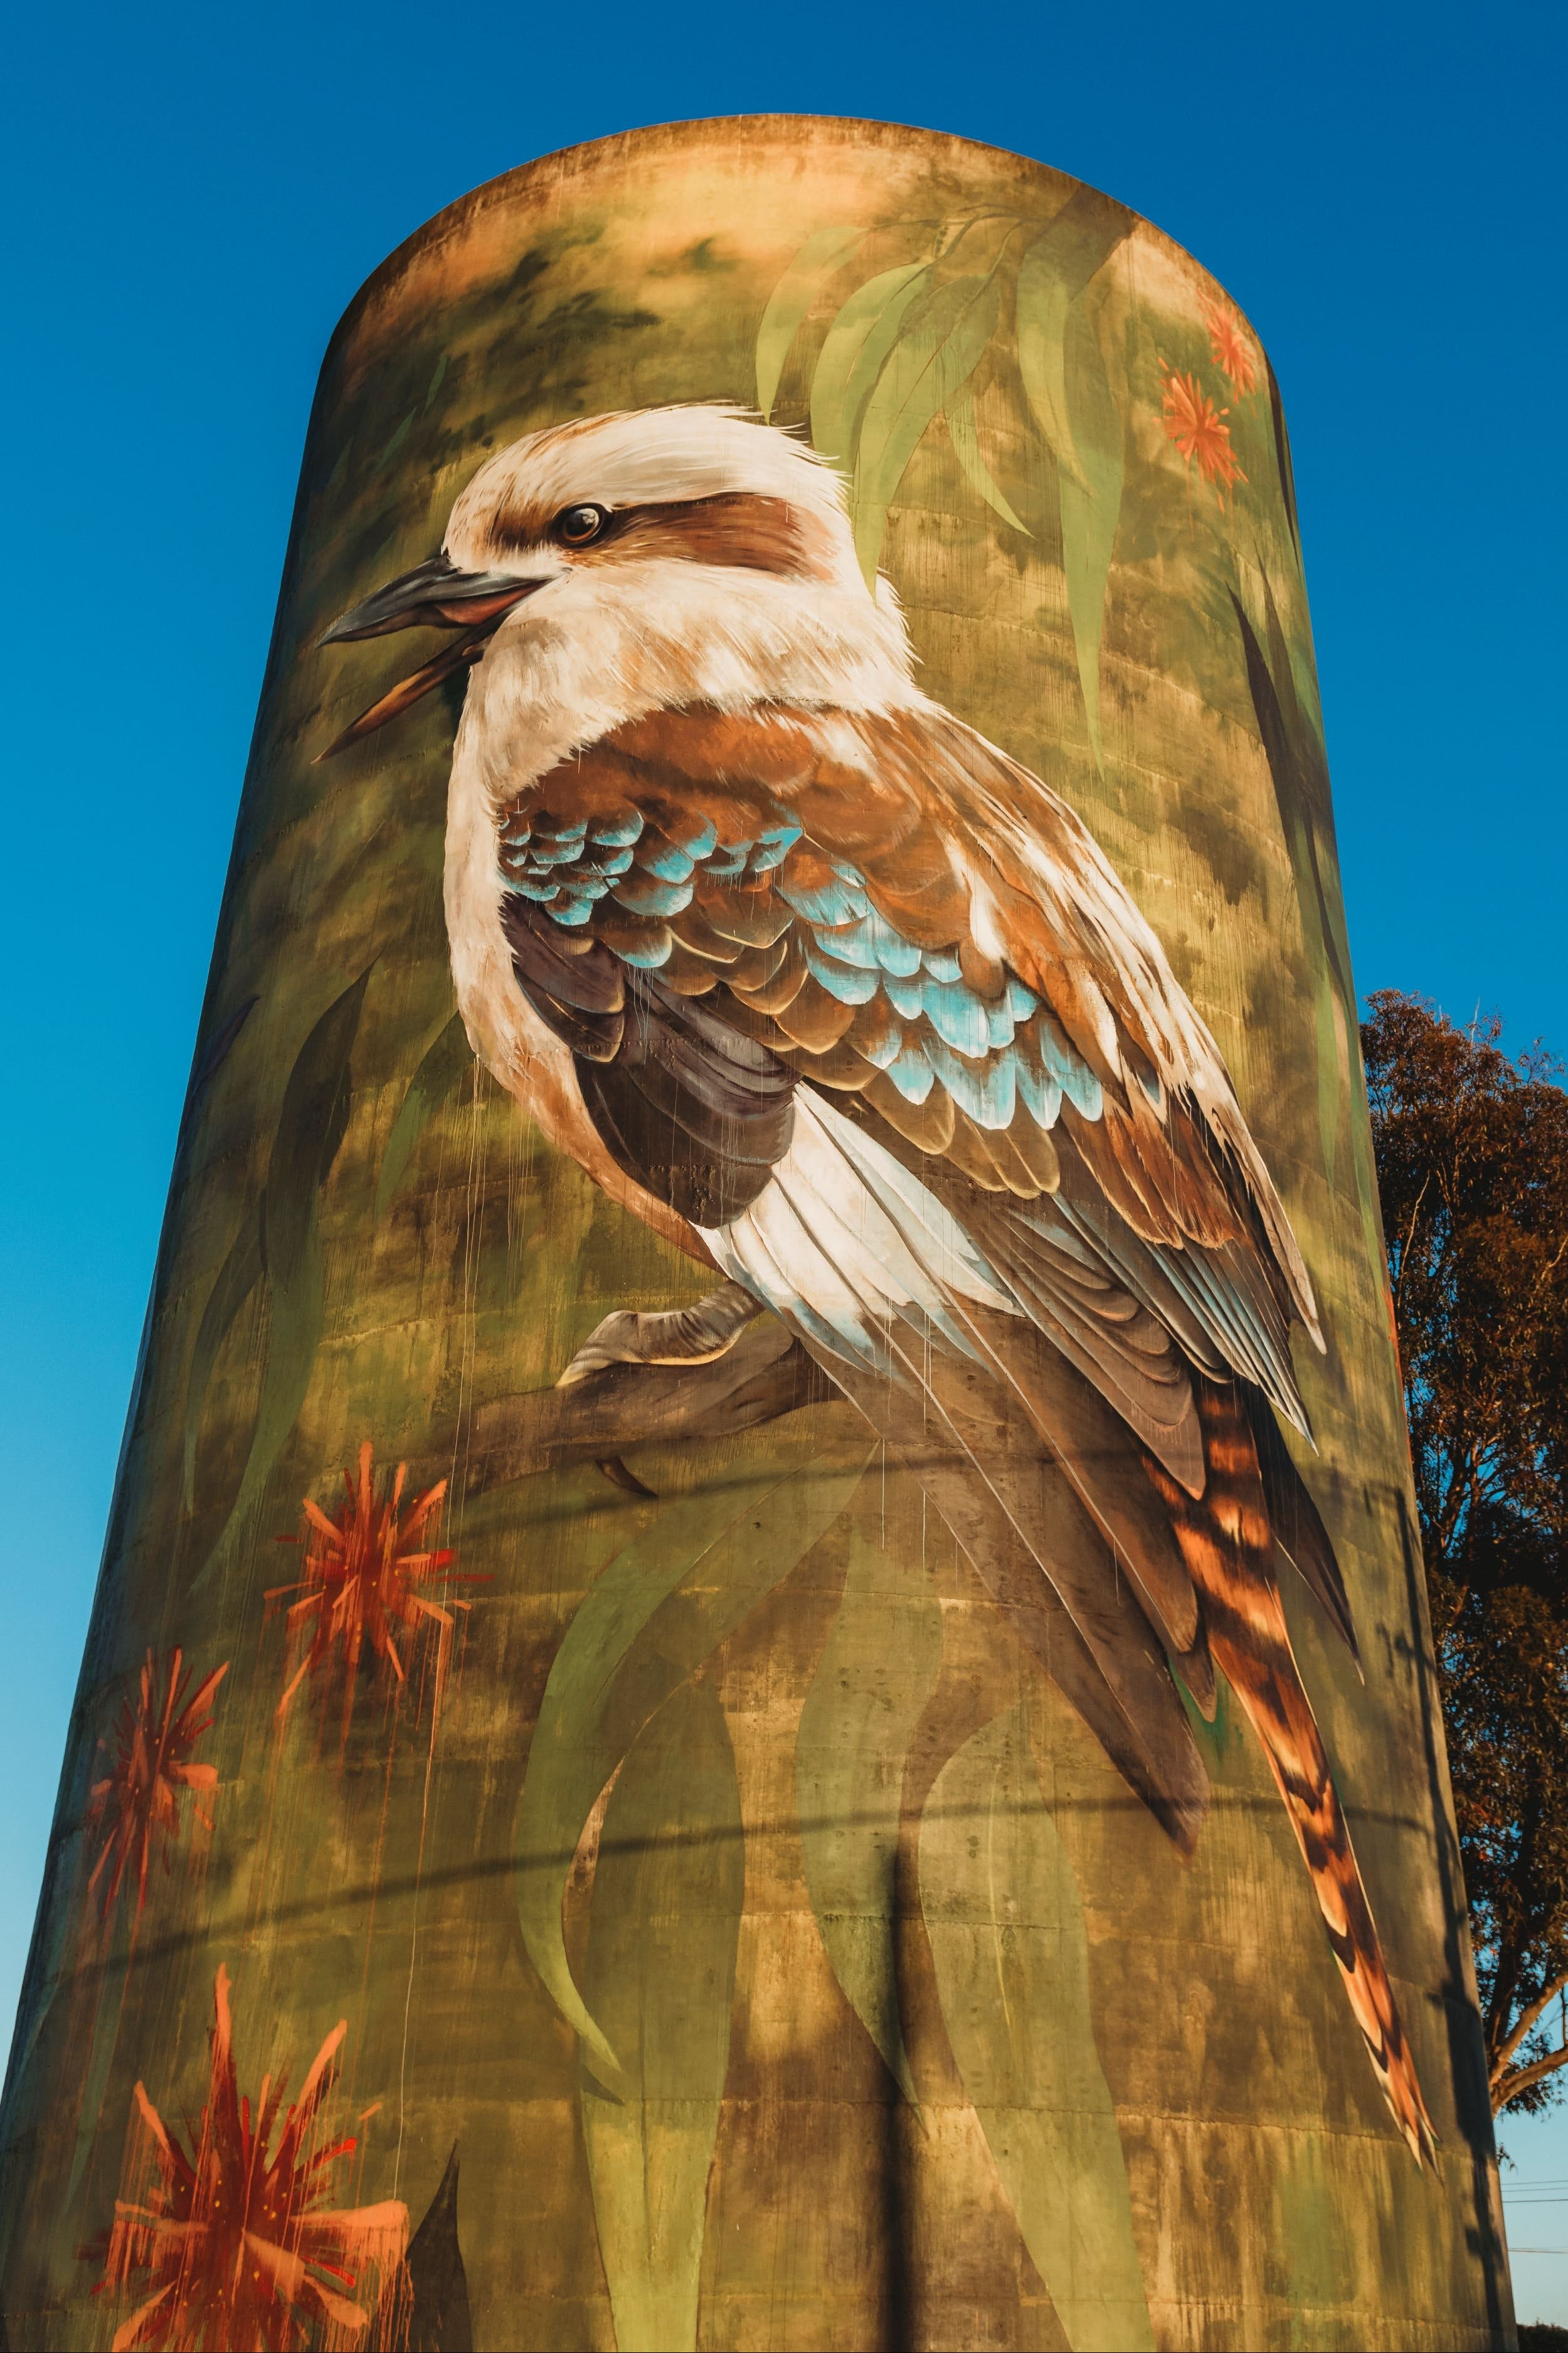 Deniliquin Water Tower Mural - Accommodation Perth